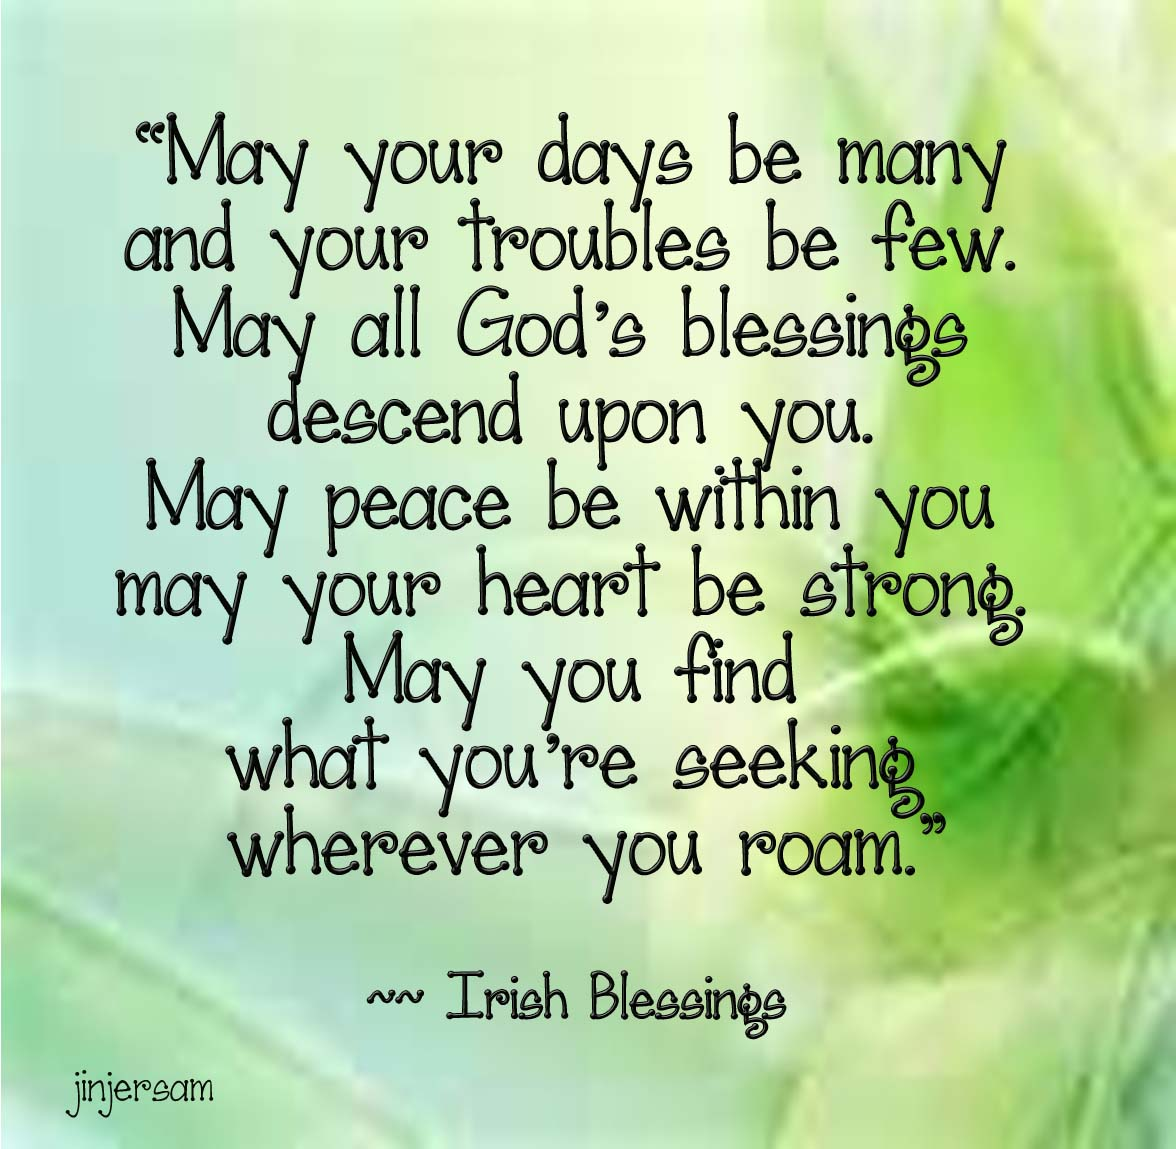 Nubia Group Inspiration Sharing Irish Blessings From The NET